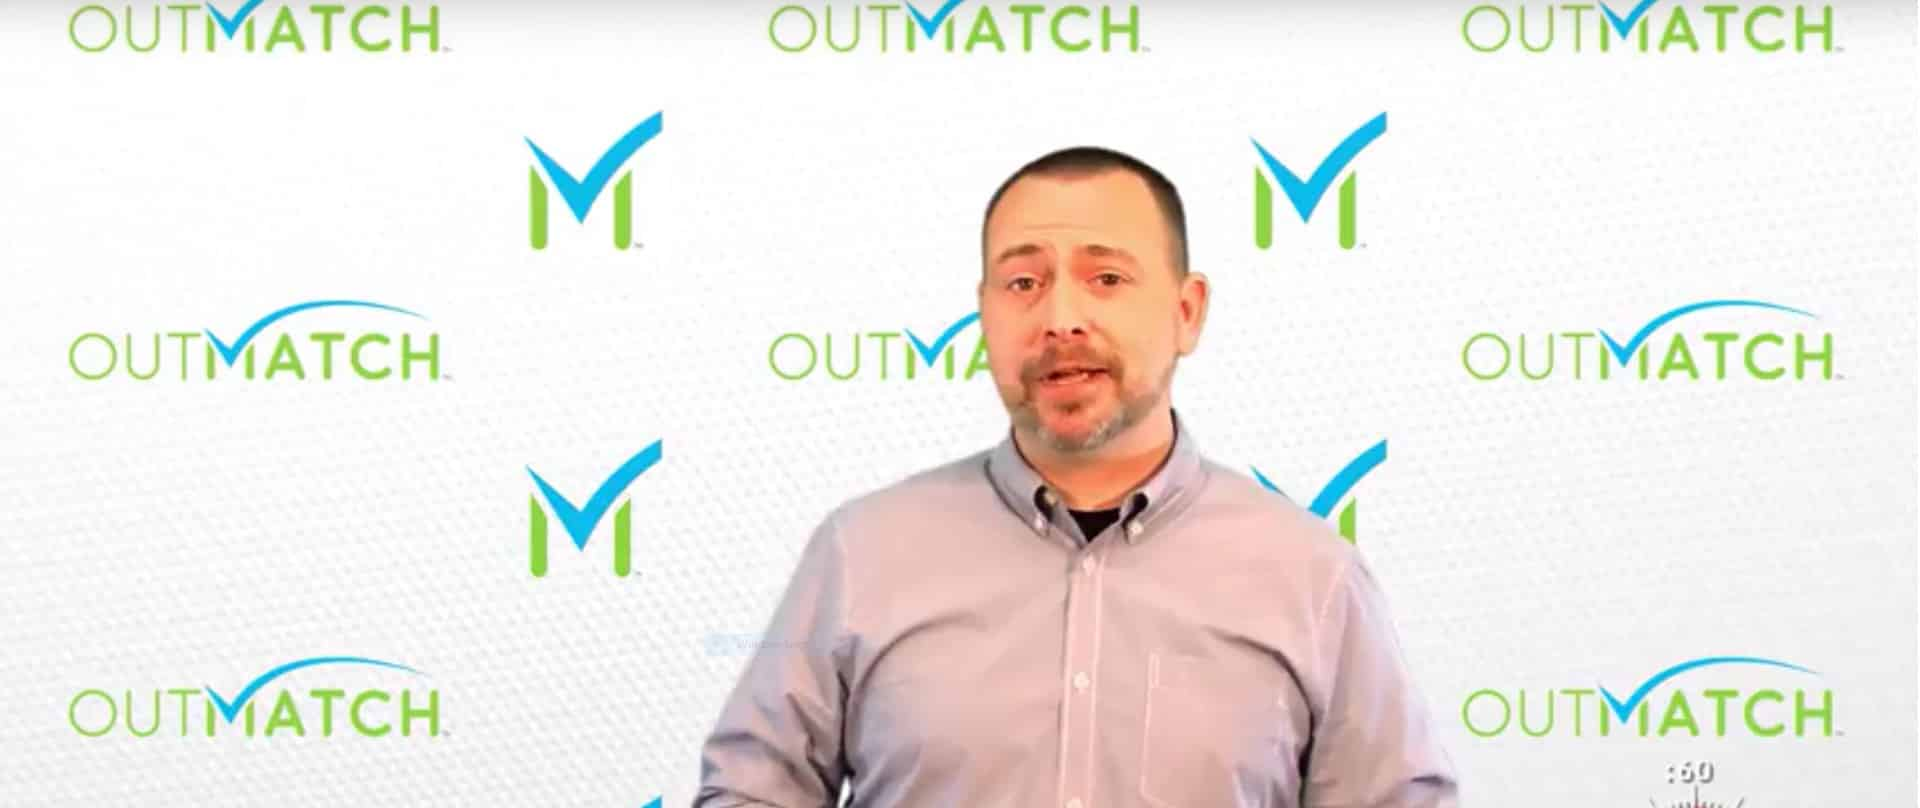 OutMatch Minute: 4 Reasons You Should Care About Validation